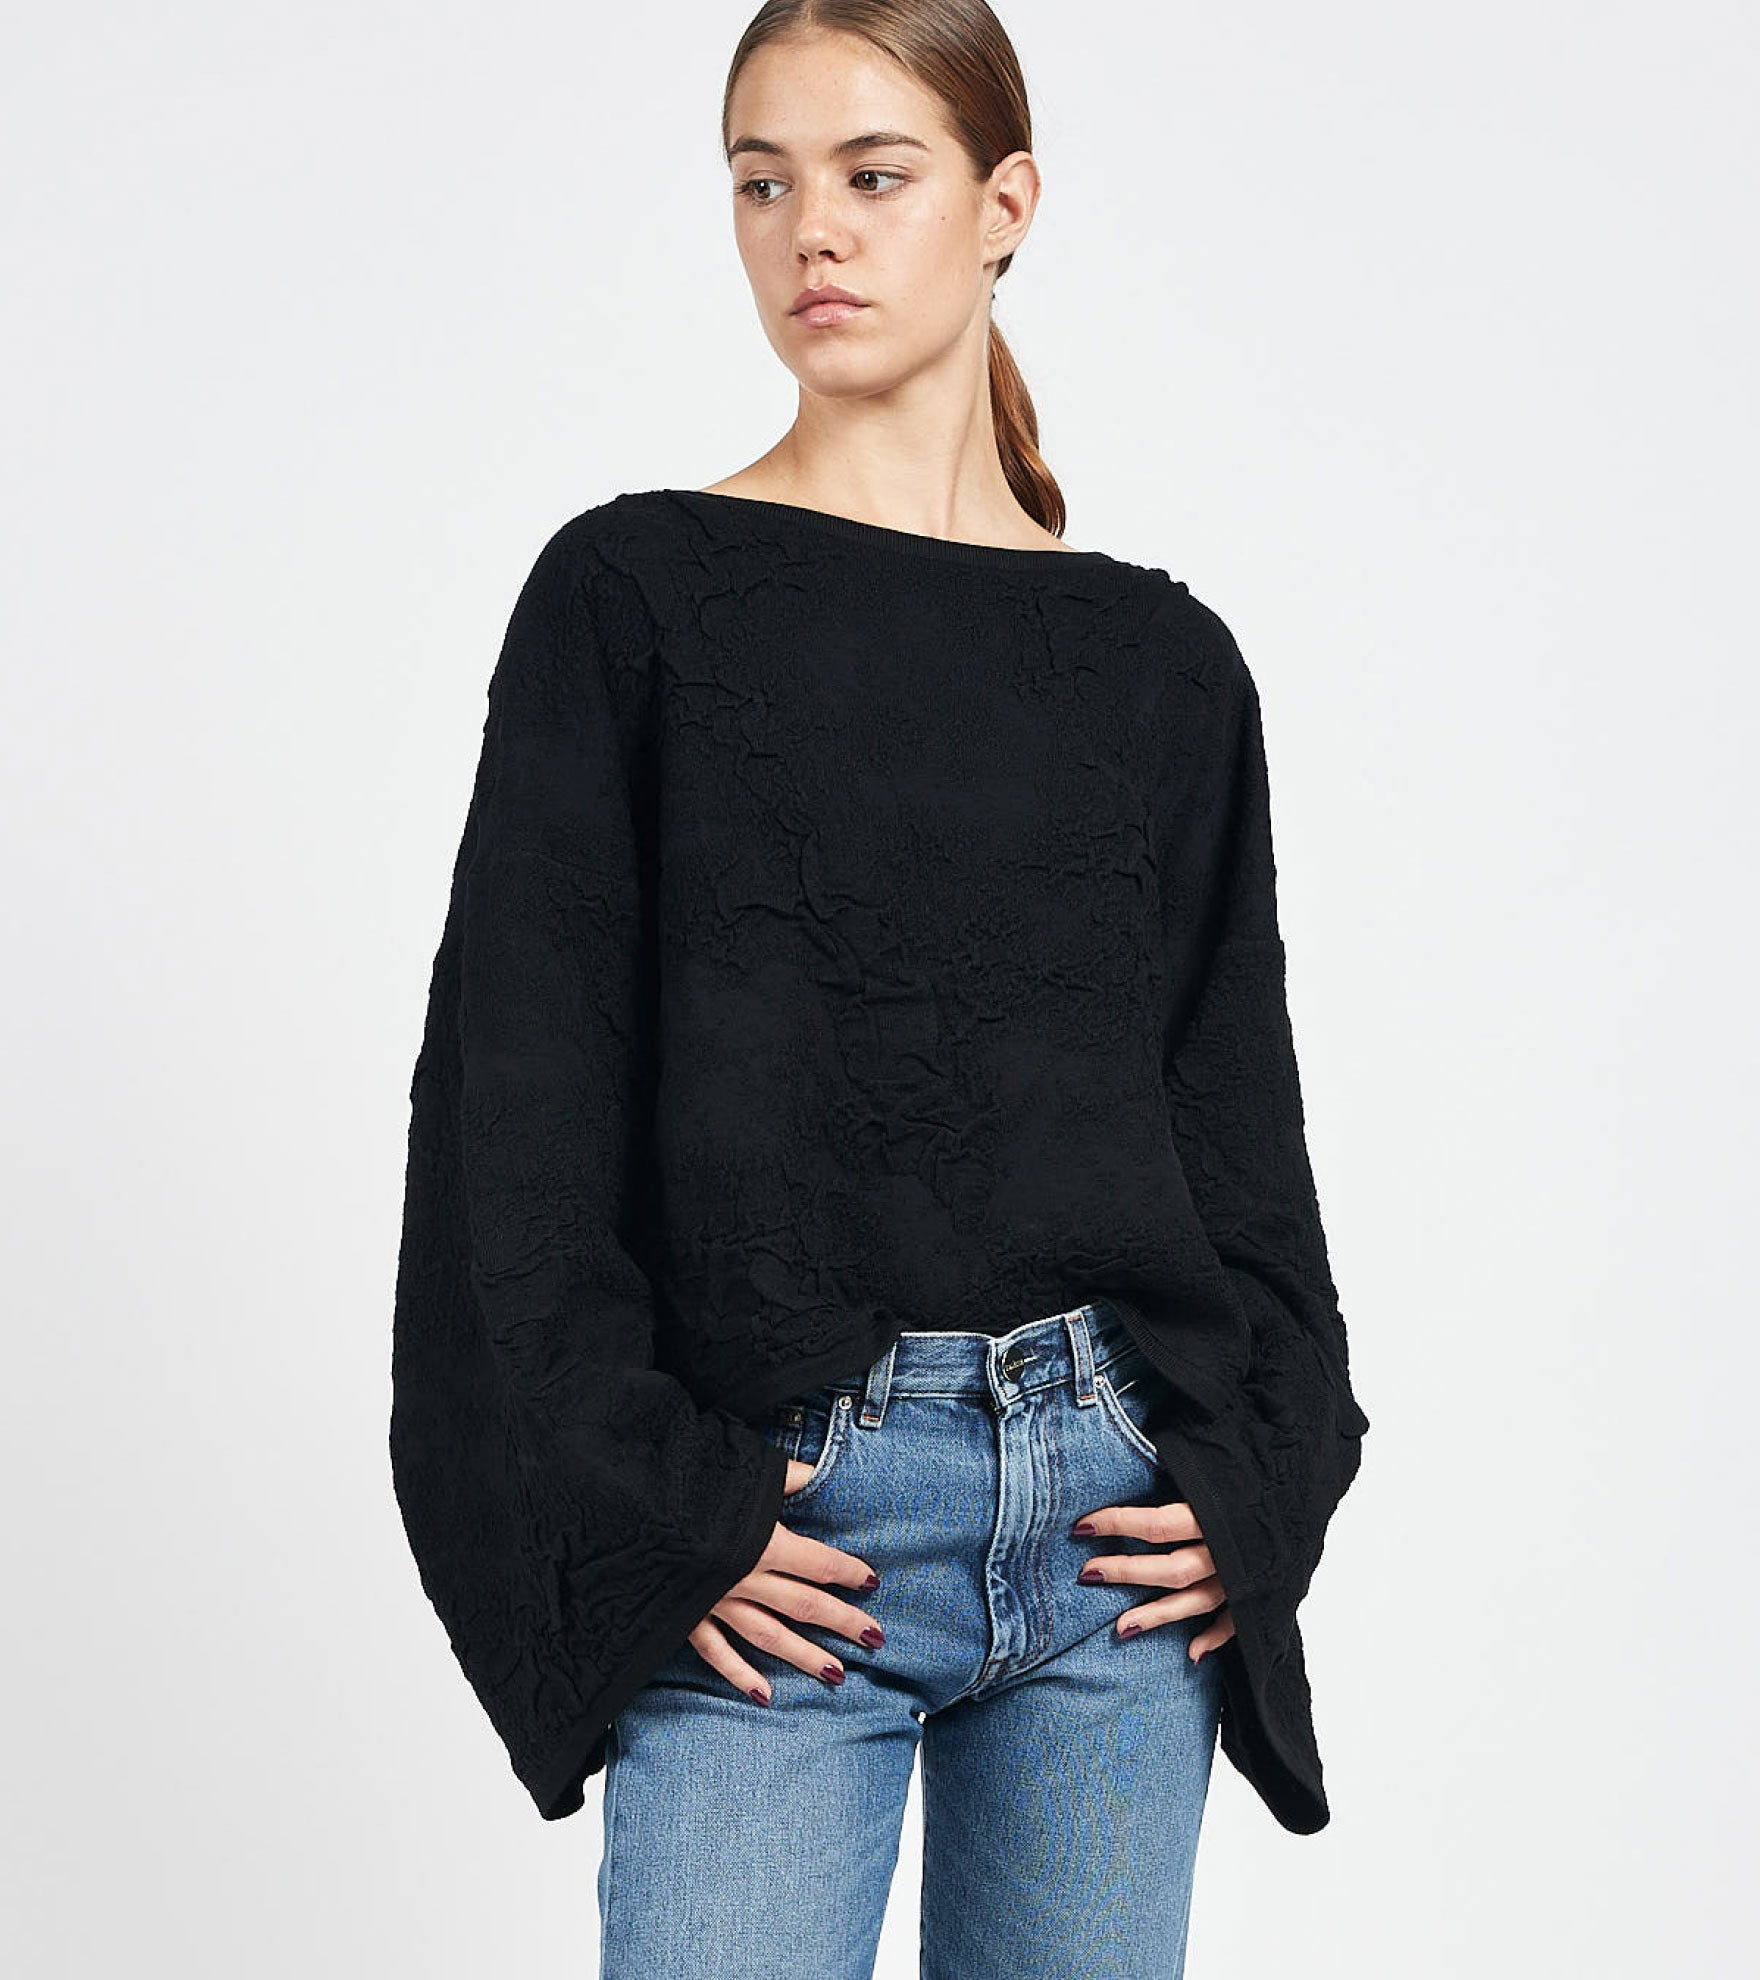 Shop women's designer sweaters and knitwear at Camargue.